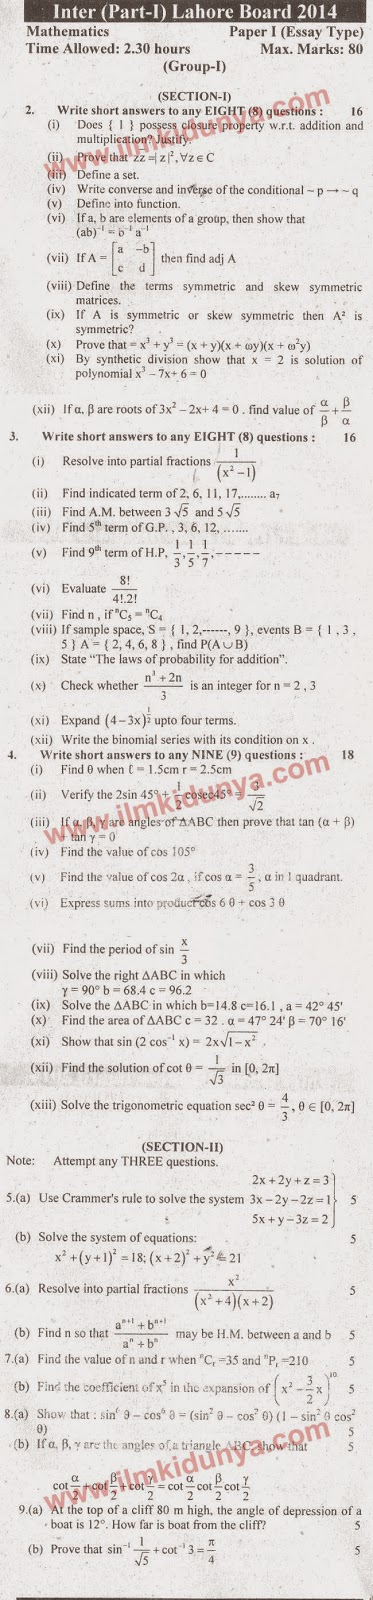 Past Papers 2014 Lahore Board Inter Part 1 Mathematics Subjective Group 1